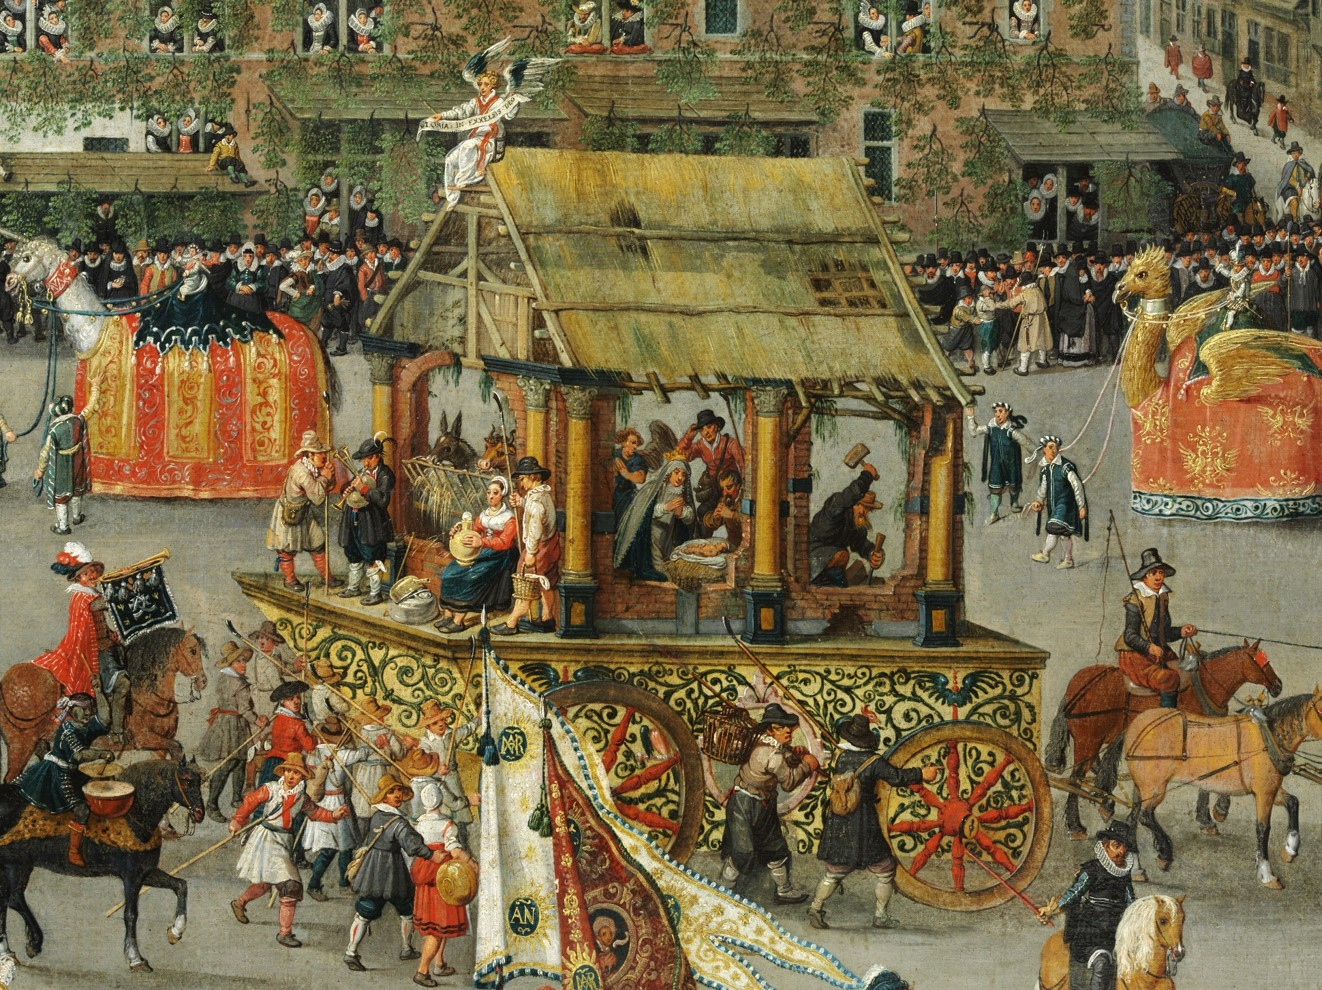 Denis van Alsloot. The Ommeganck in Brussels on 31 May 1615. The Triumph of Archduchess Isabella. Detalhe